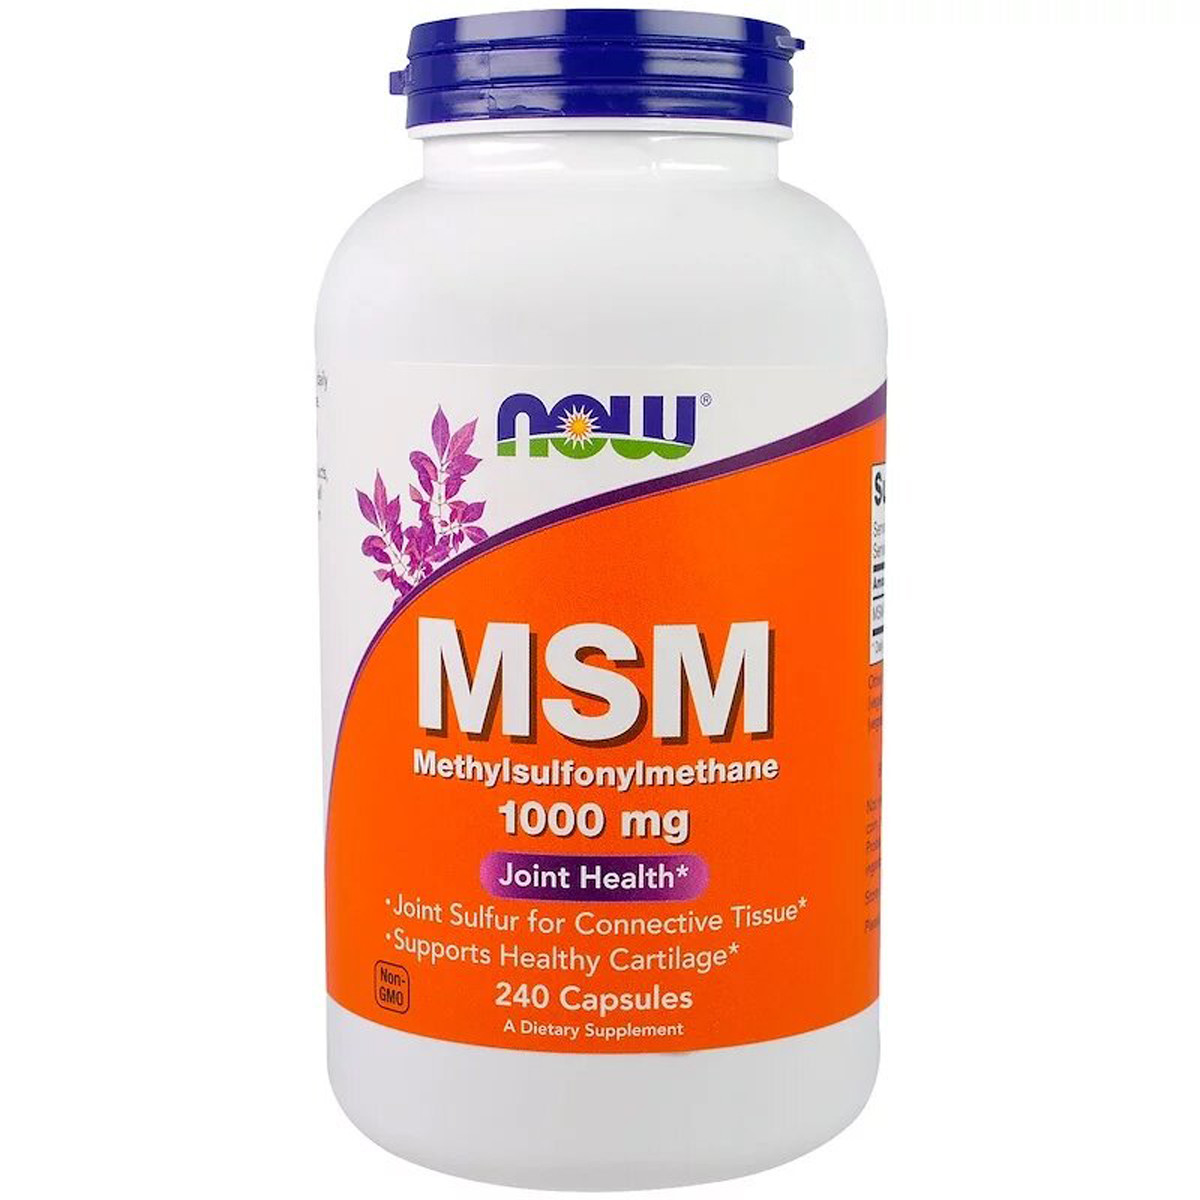 МСМ (Метилсульфонинметан), Now Foods, MSM, 1000 mg, 240 Capsules